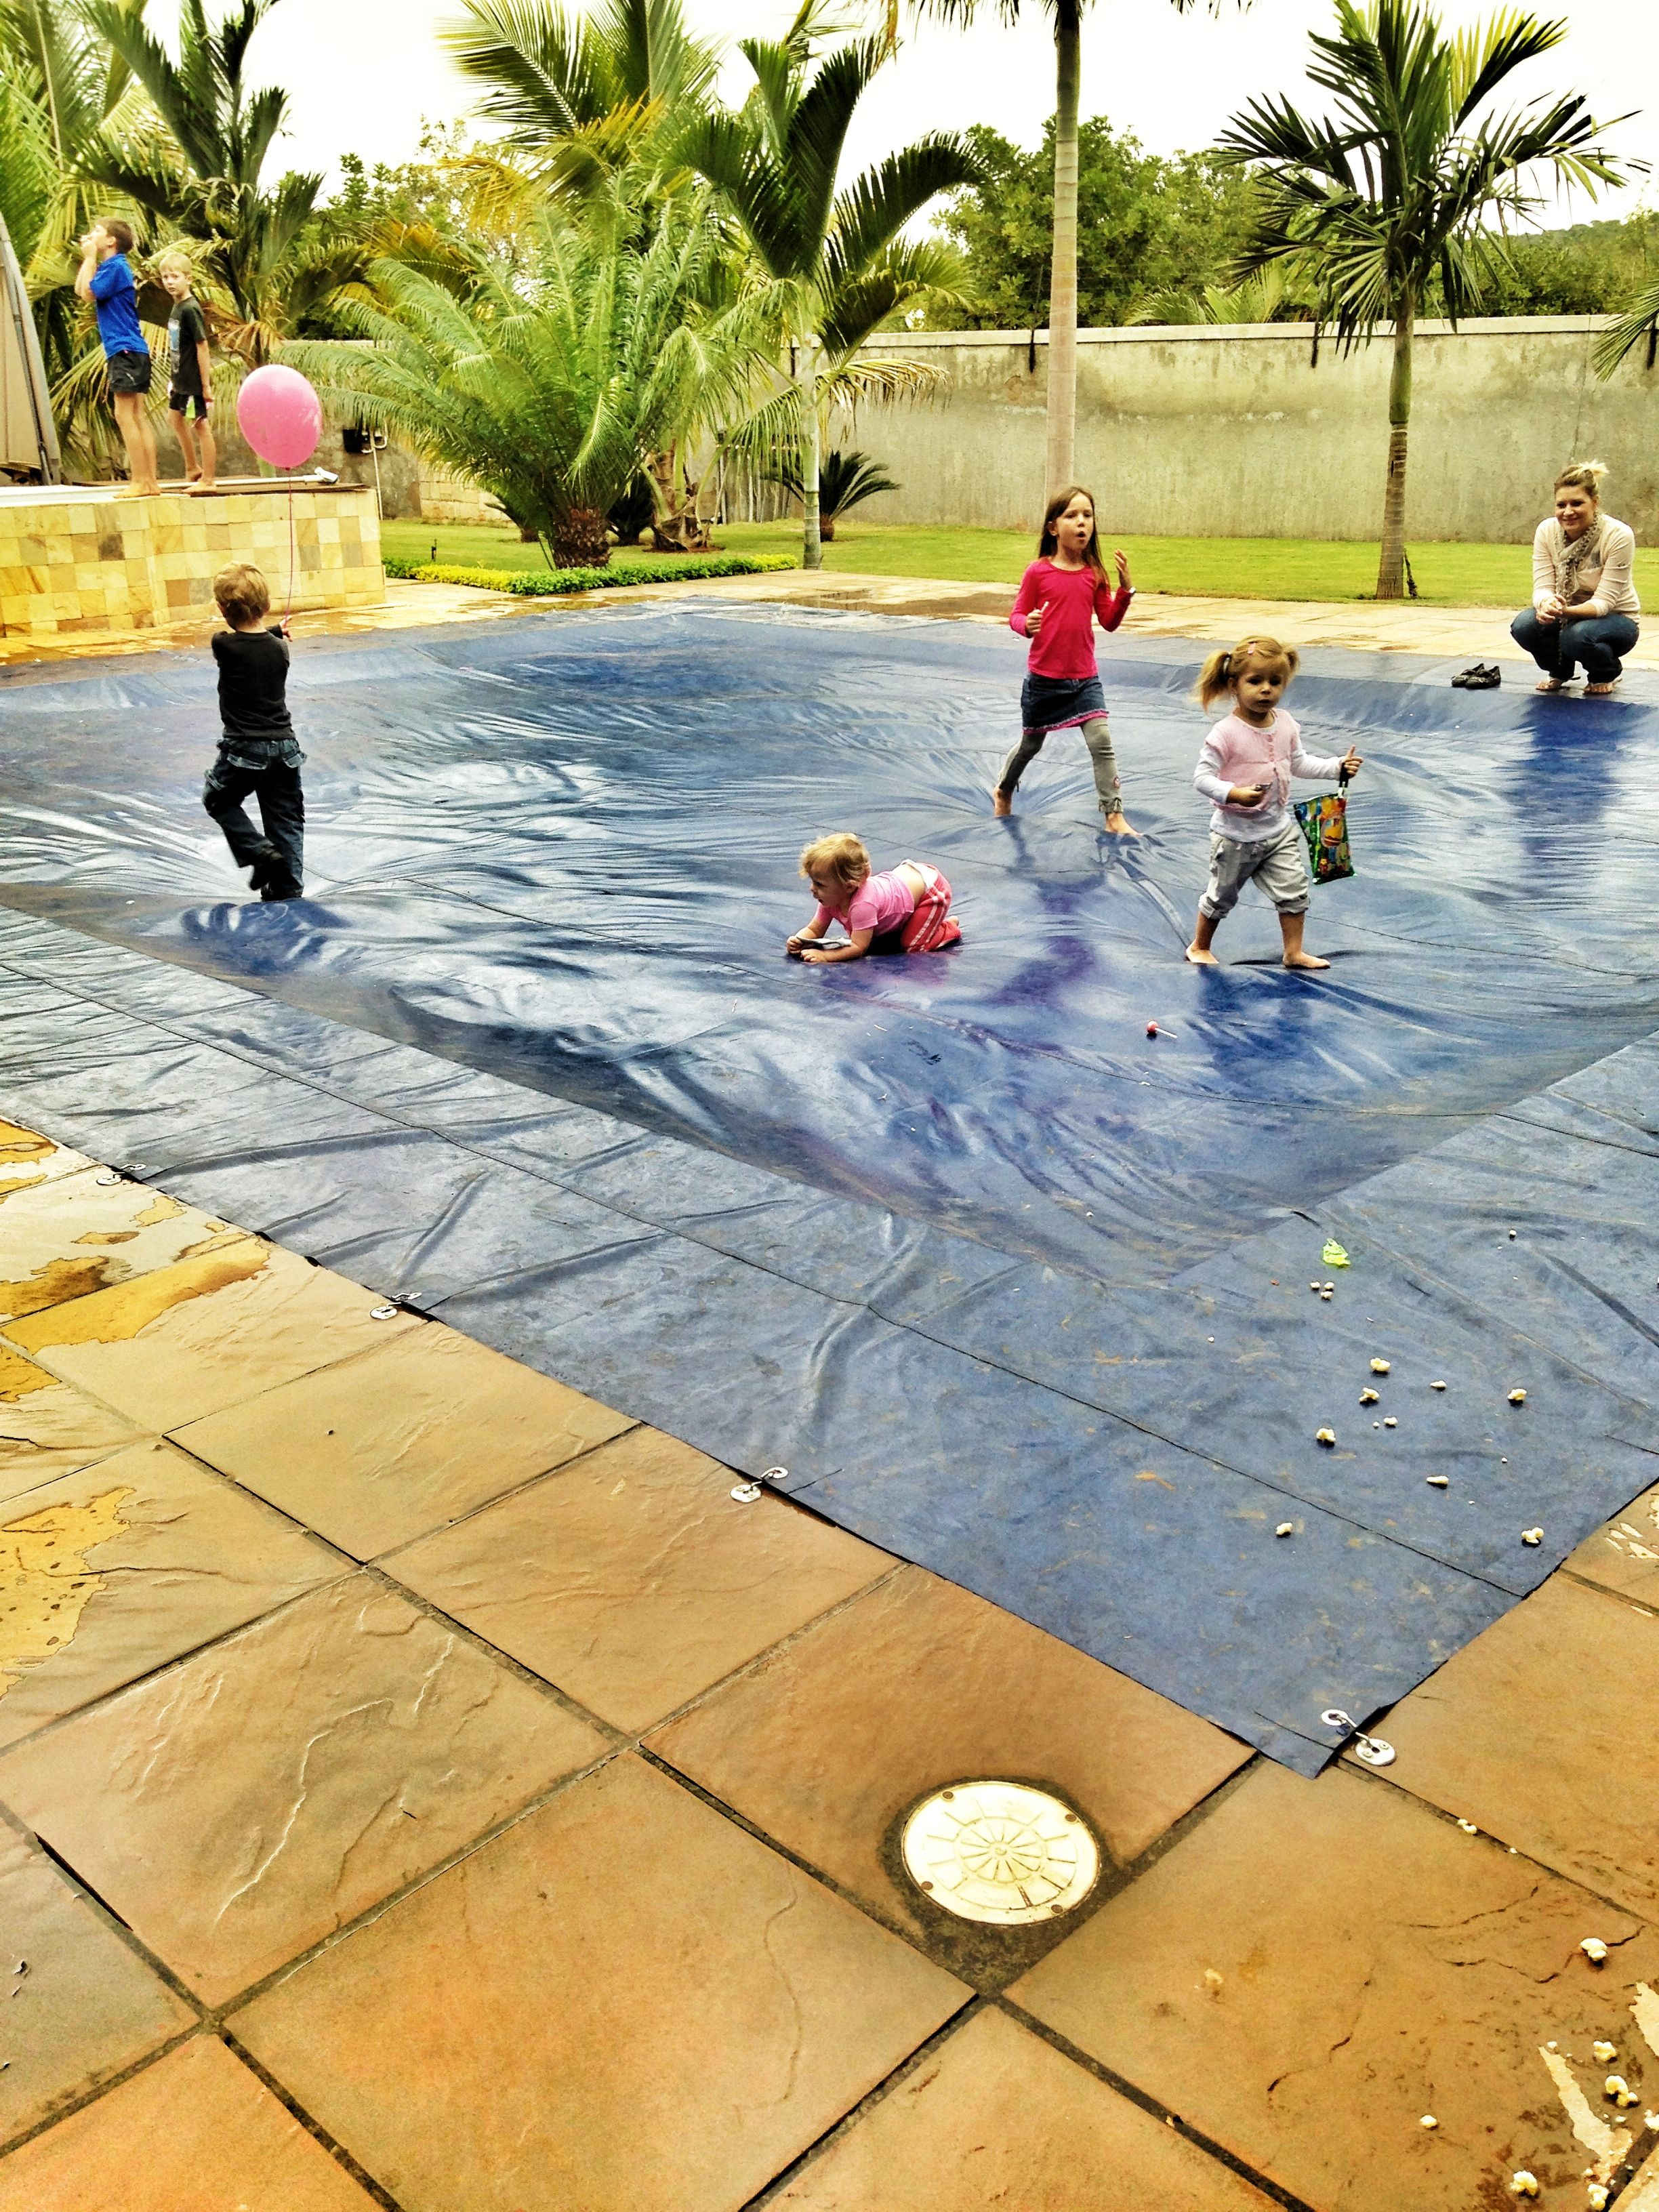 Keeping them safe diy way, pool cover! From todds to teens ...